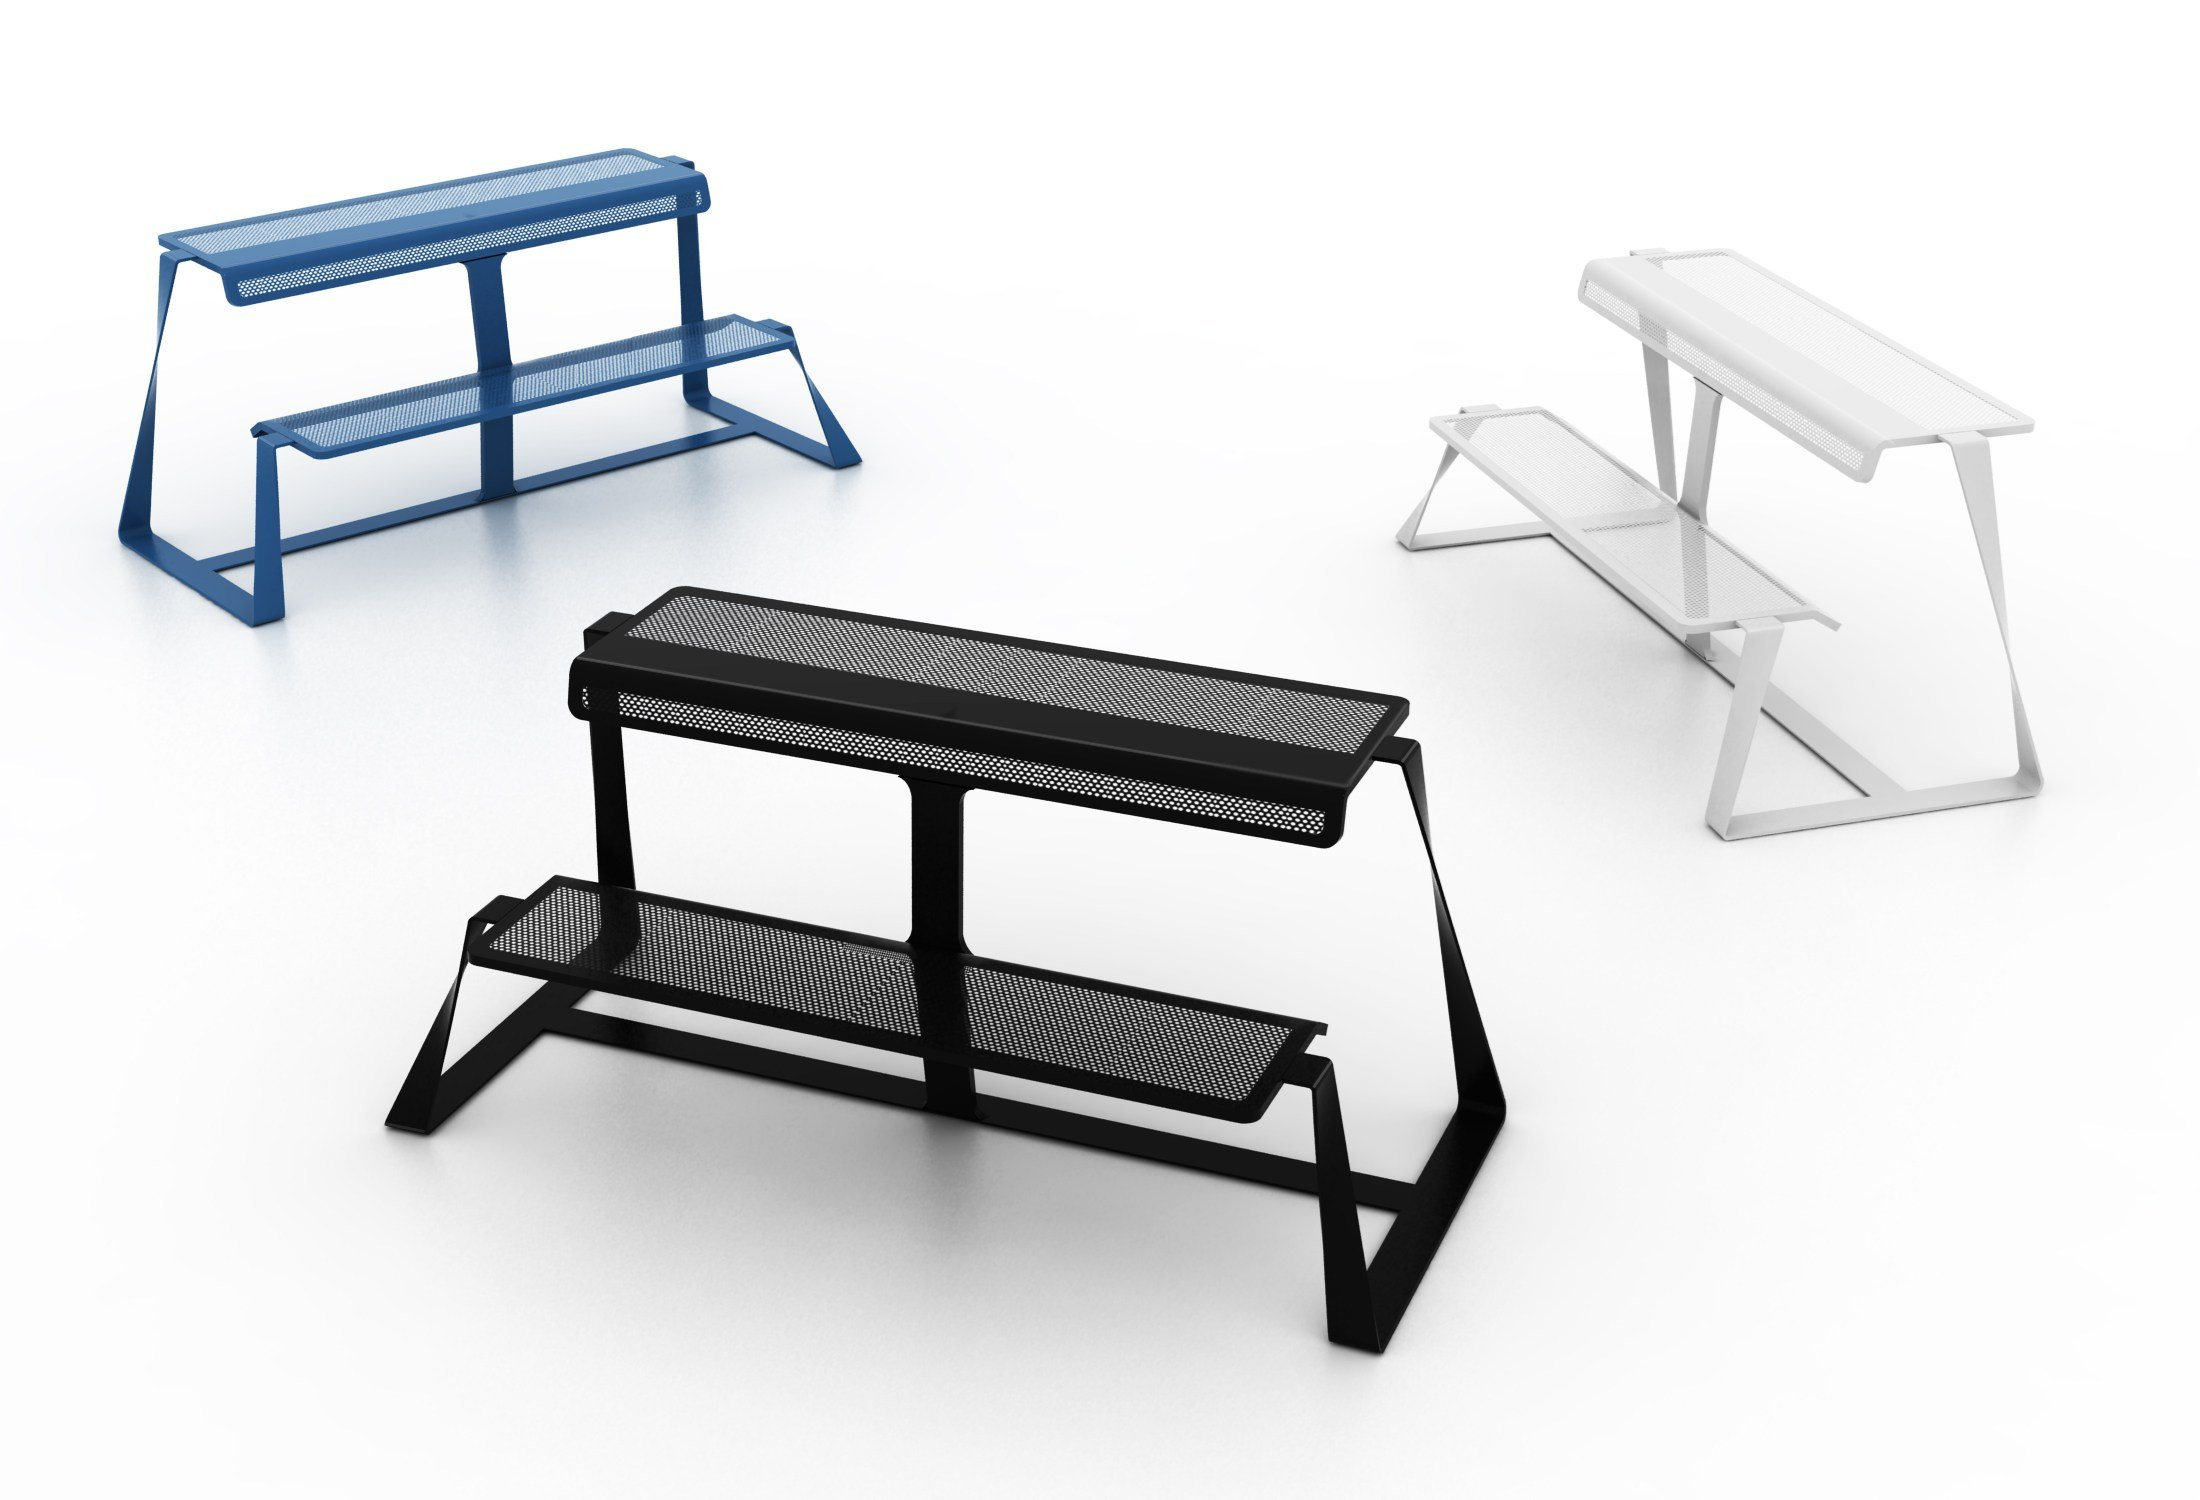 Metal Bench T Bench By Altreforme Design Be Bold Design Studio